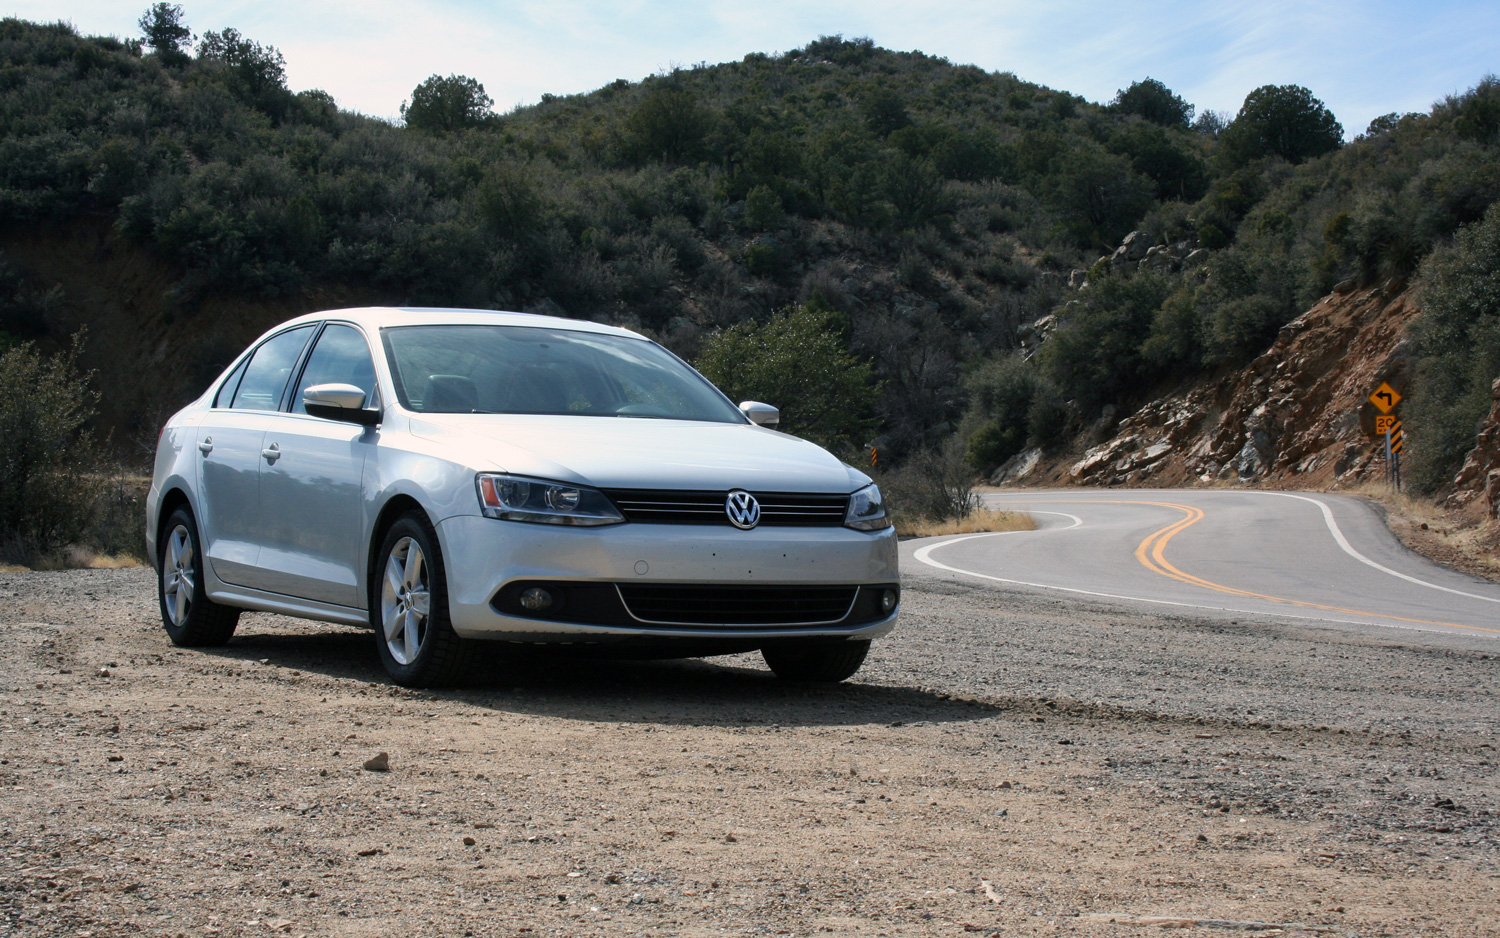 2011 volkswagen jetta tdi long term update 8 [ 1500 x 938 Pixel ]